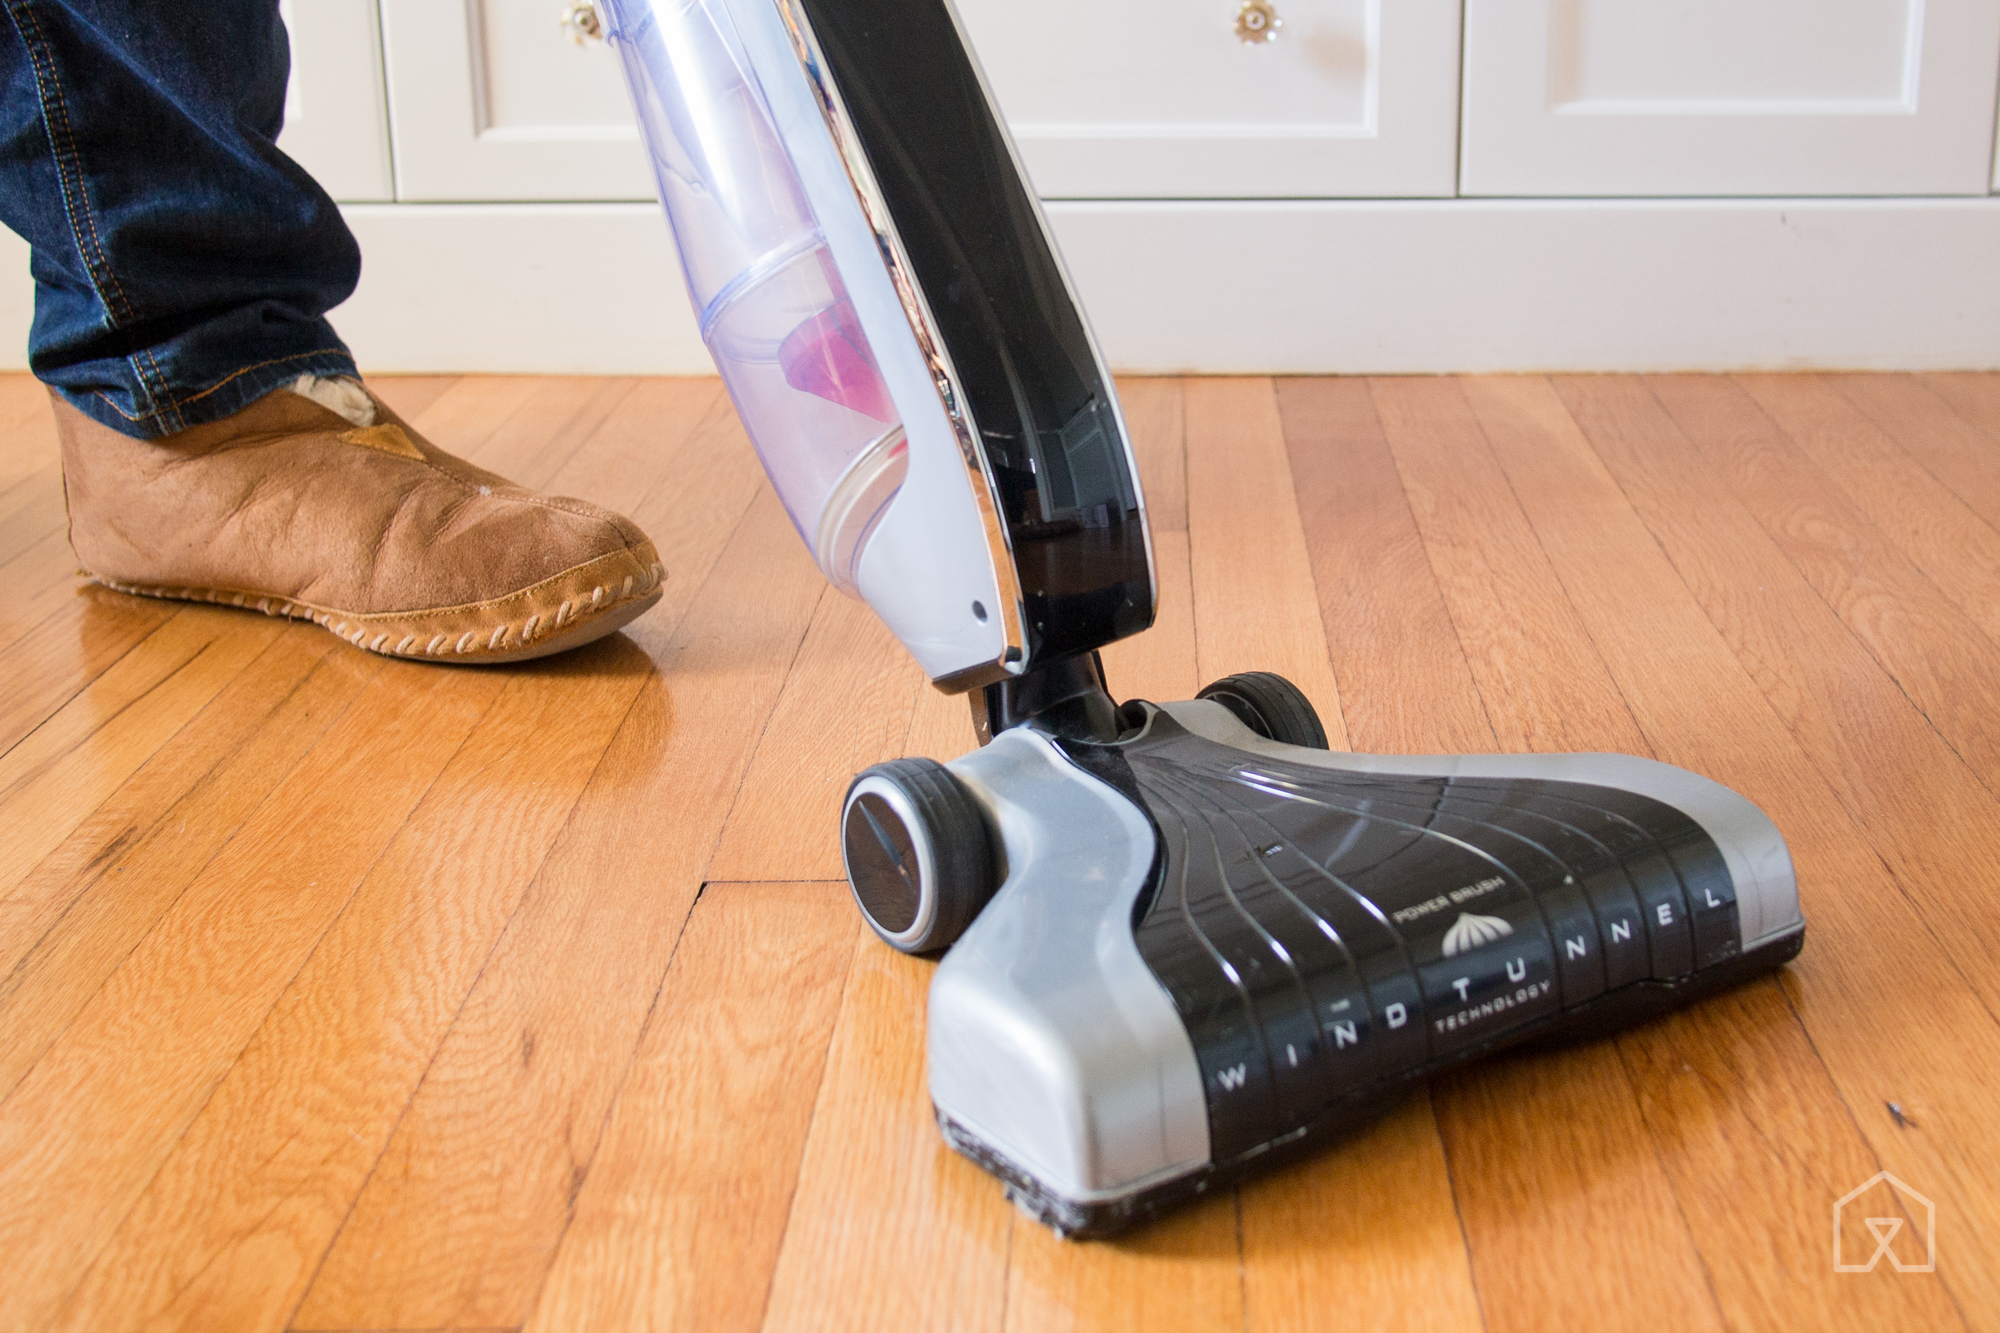 Laminate Floor Vacuum shark rocket deluxepro best vacuum for laminate floors A Tried And True Choice For Modest Messes